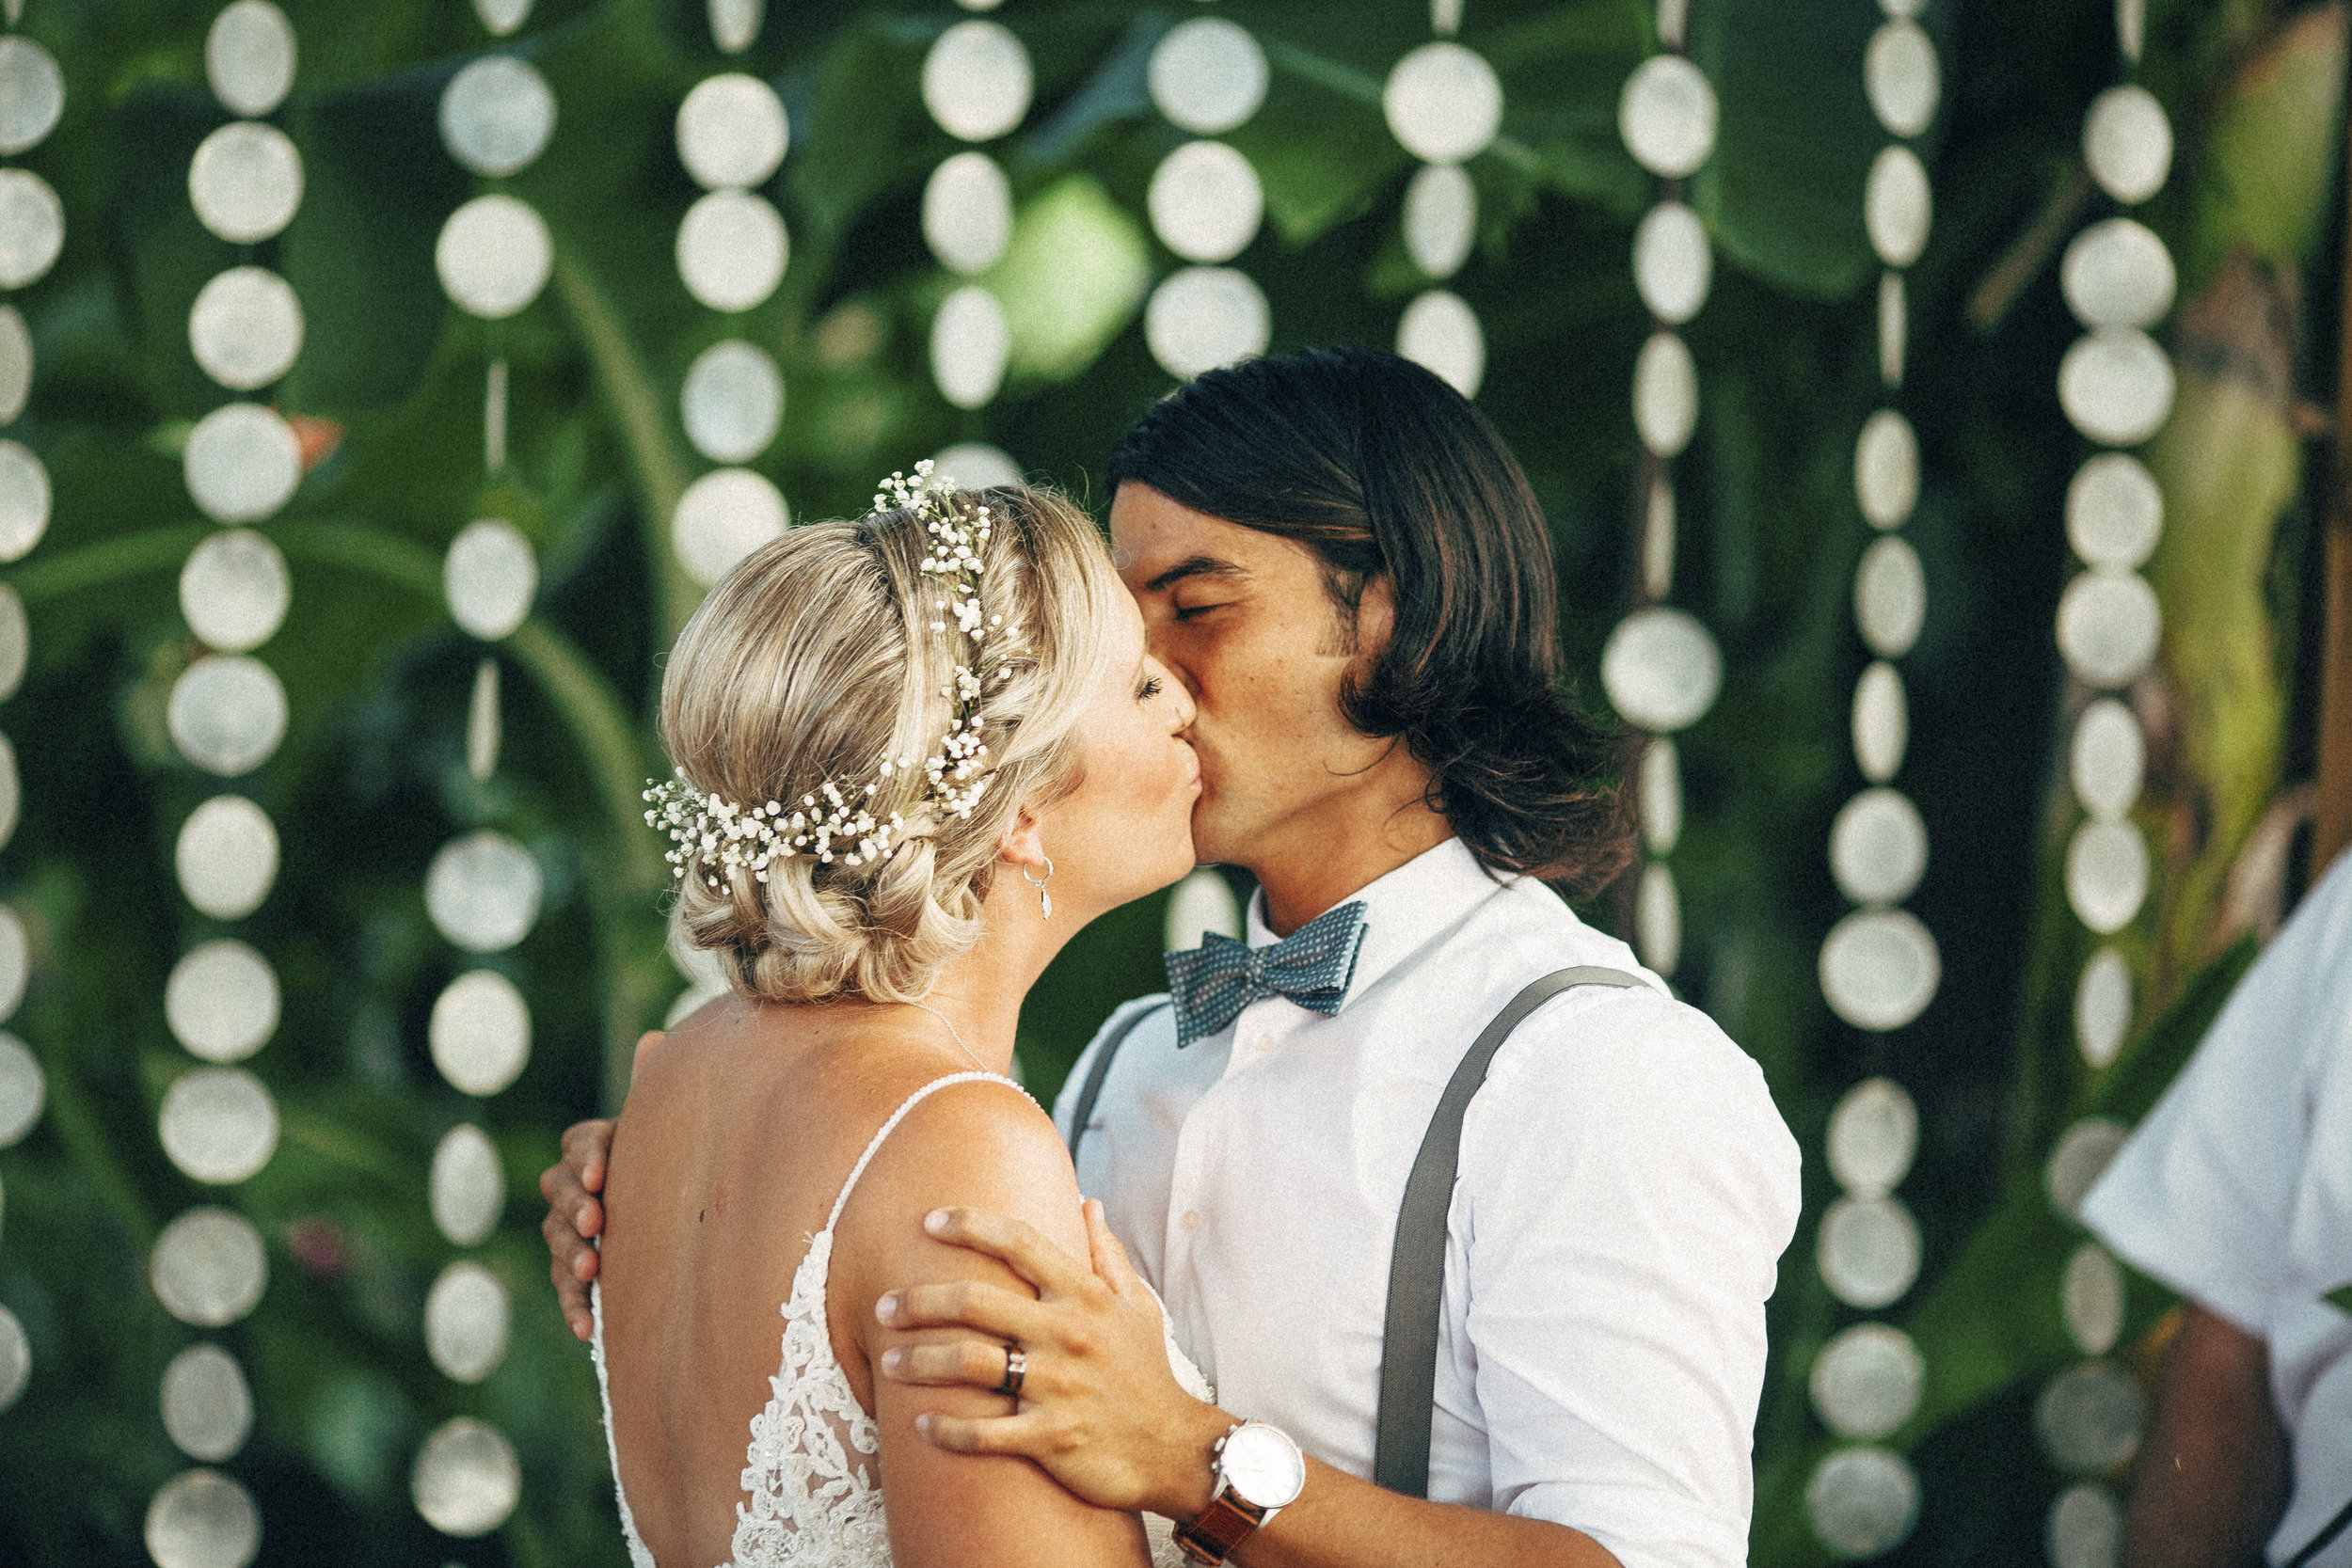 Multicultural Backyard Wedding Images Ideas Candid Sentimental Emotional Photographer Marriage Photos